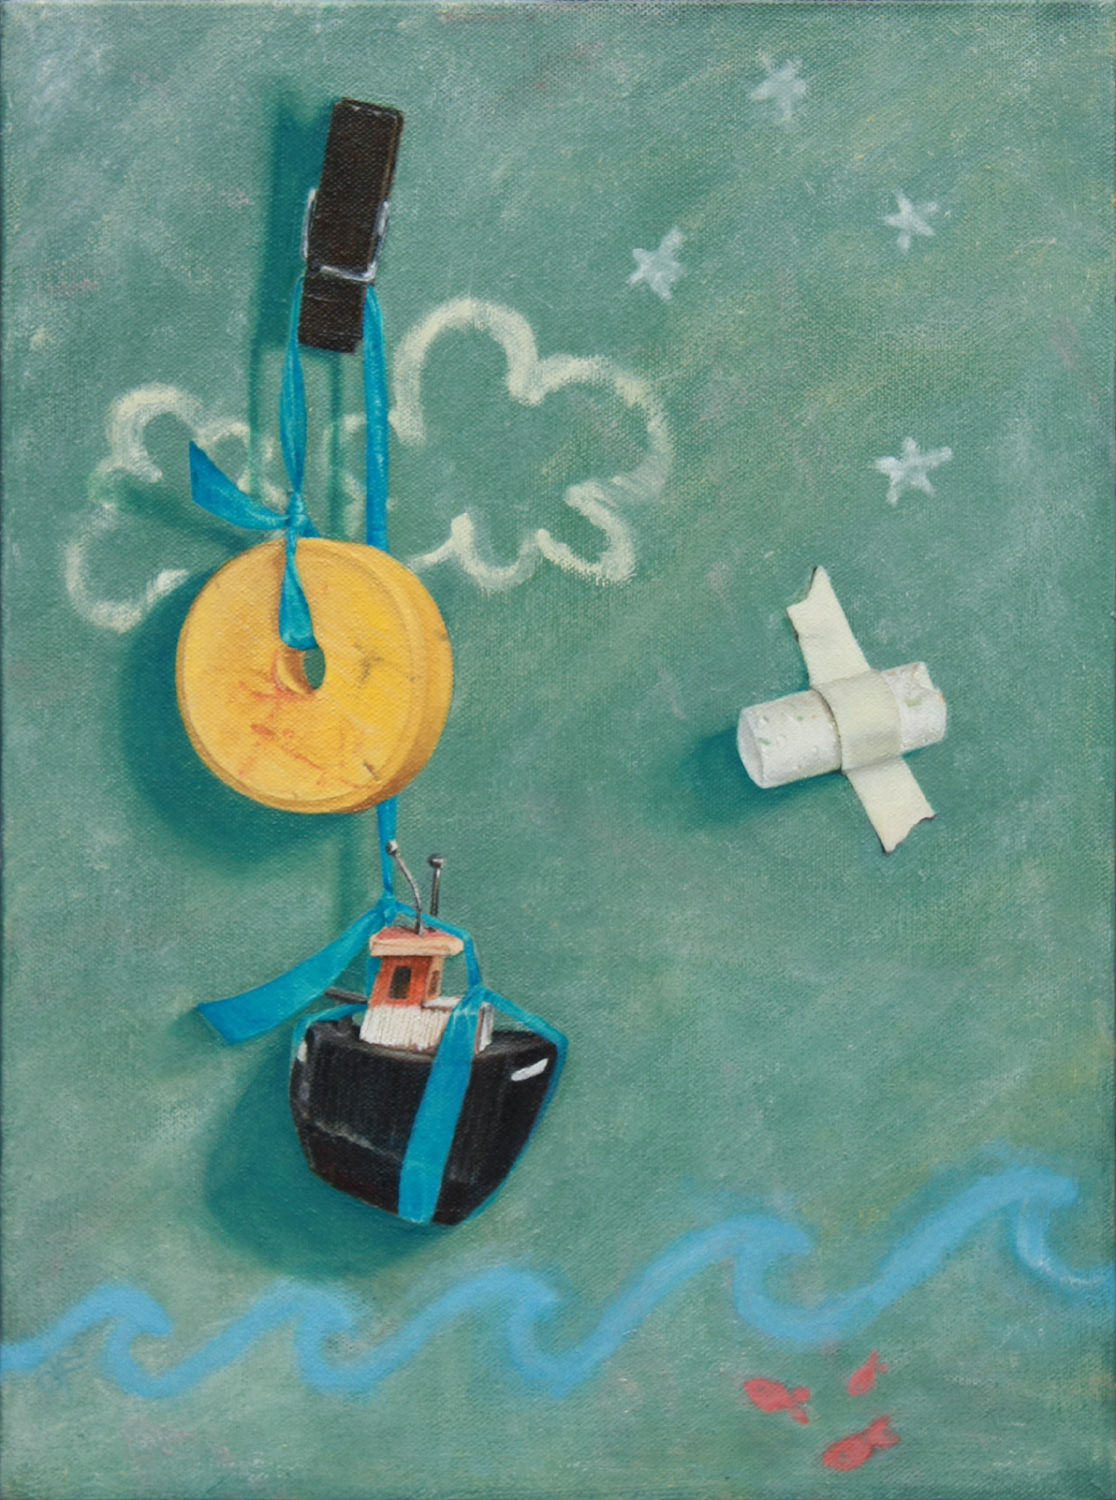 Counting Game . Oil on canvas. 12 x 16 inches.  $600  Plunged into our children's world, we count stars, chalk, toys, and . . . sometimes we just count the days out at sea.